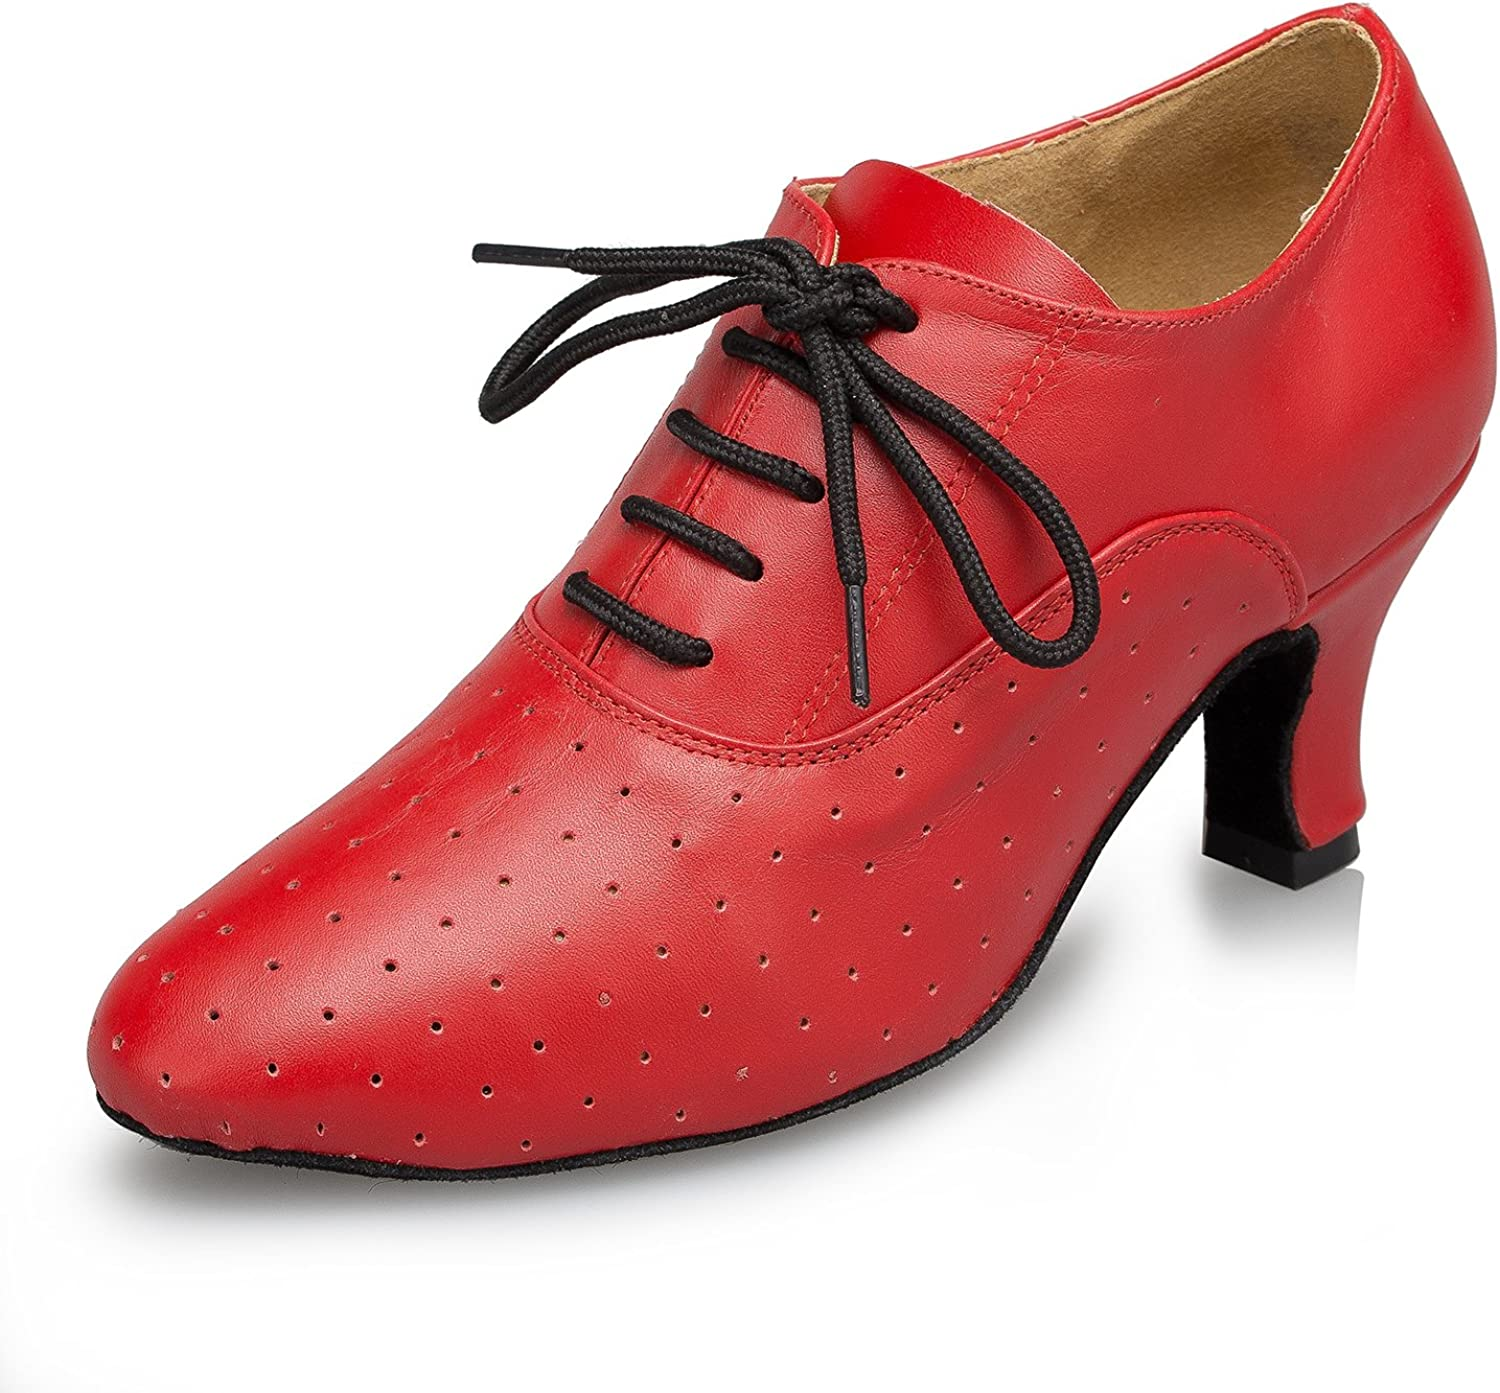 TDA Women's Lace-up Leather Latin Dance shoes Tango Ballroom Salsa Breathable Perforated shoes